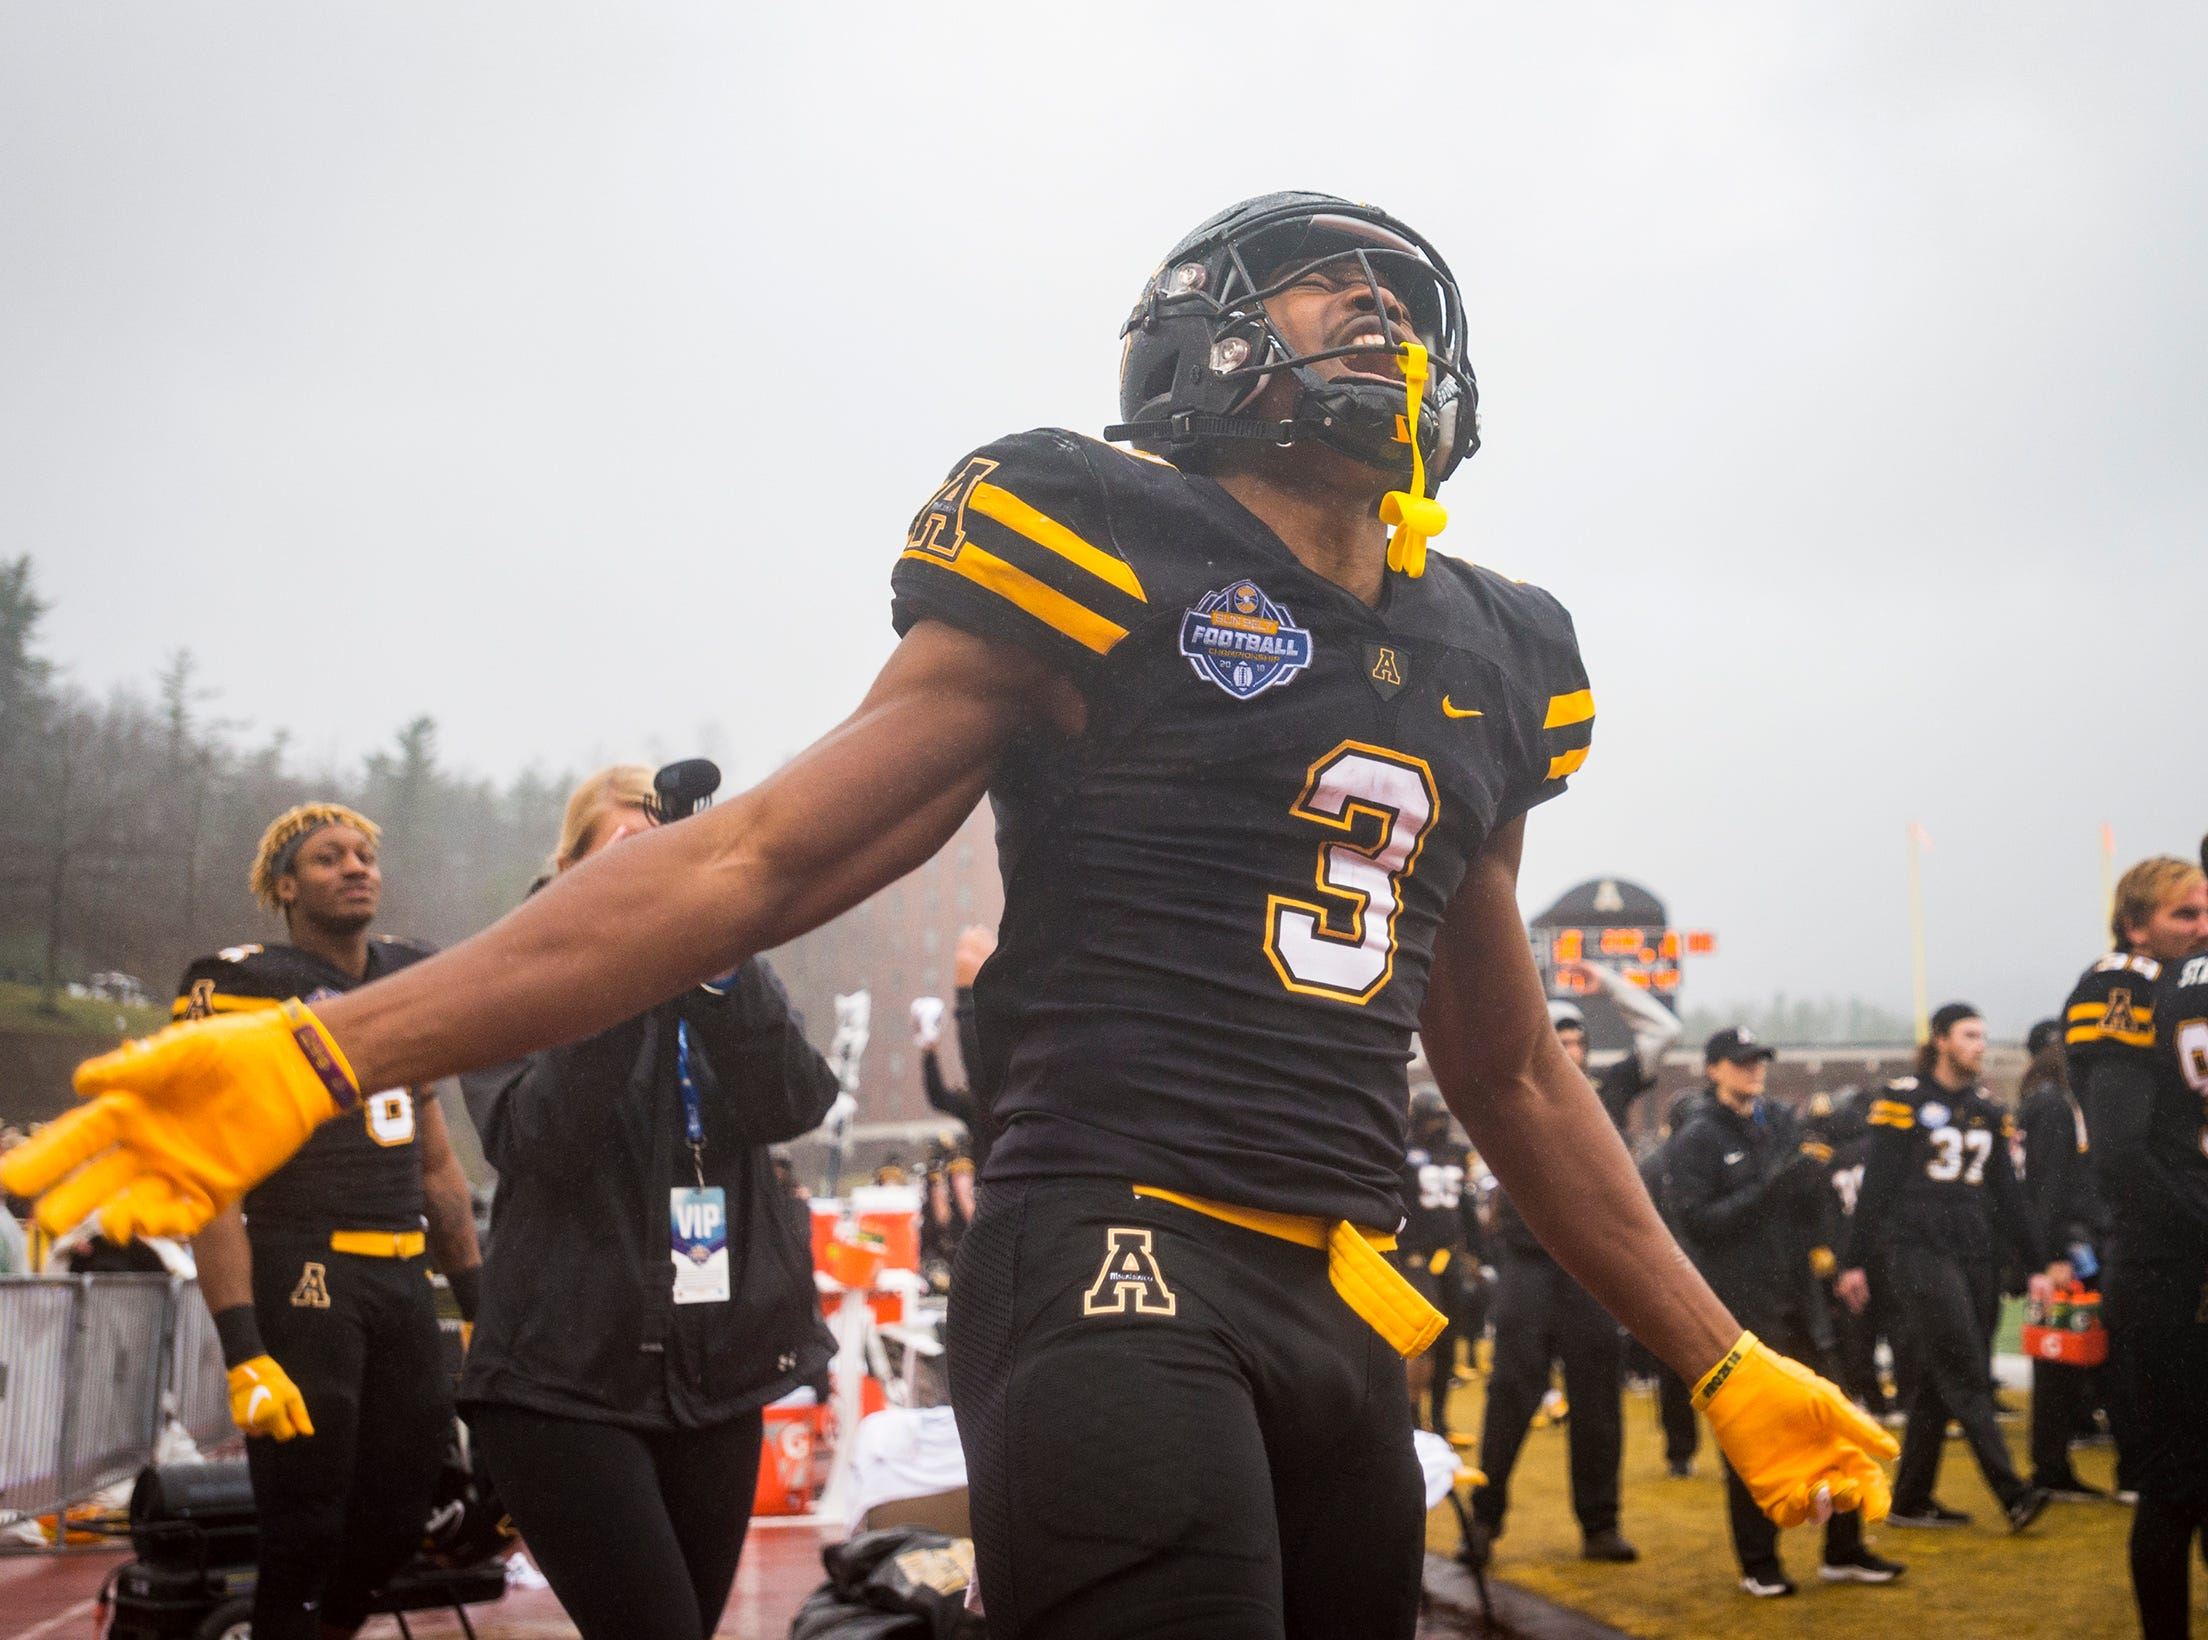 Appalachian State running back Darrynton Evans (3) celebrates in the closing moments of Appalachian State's victory over Louisiana in the Sunbelt Championship on Saturday, Dec. 1, 2018 in Boone, N.C.